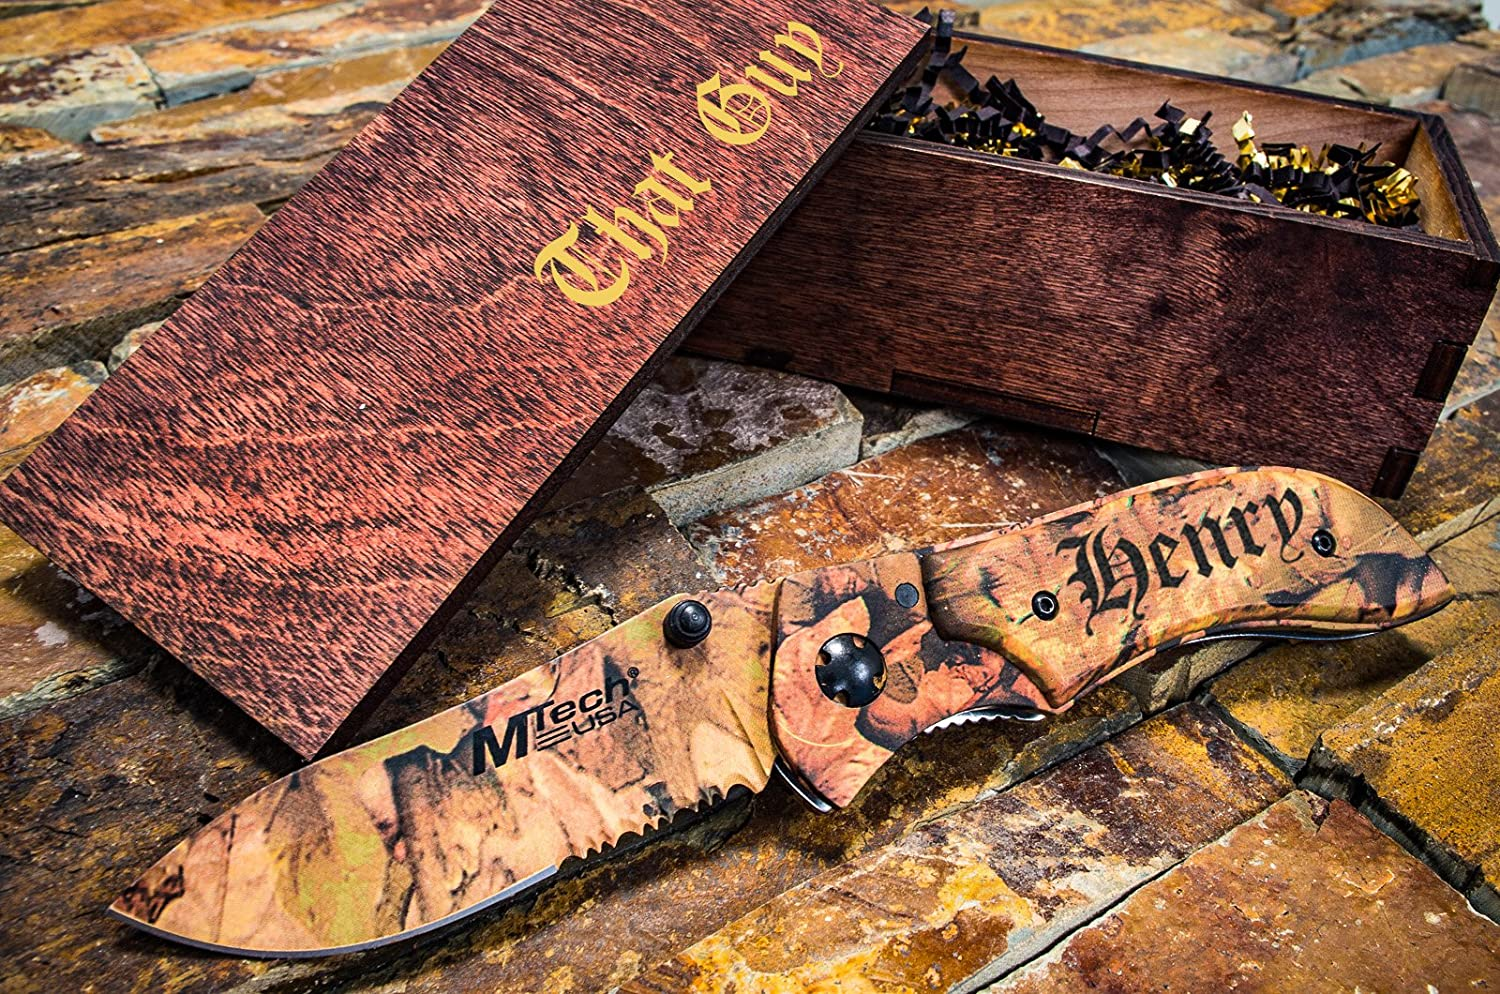 Personalized Camo Knife Engraved Wooden Gift Box Custom Boxes Pocket Knives Groomsmen Set Camouflage Groomsman Husband Wood Hunting Man Mens Boyfriend Wedding Gifts Folding Rustic Locks Open